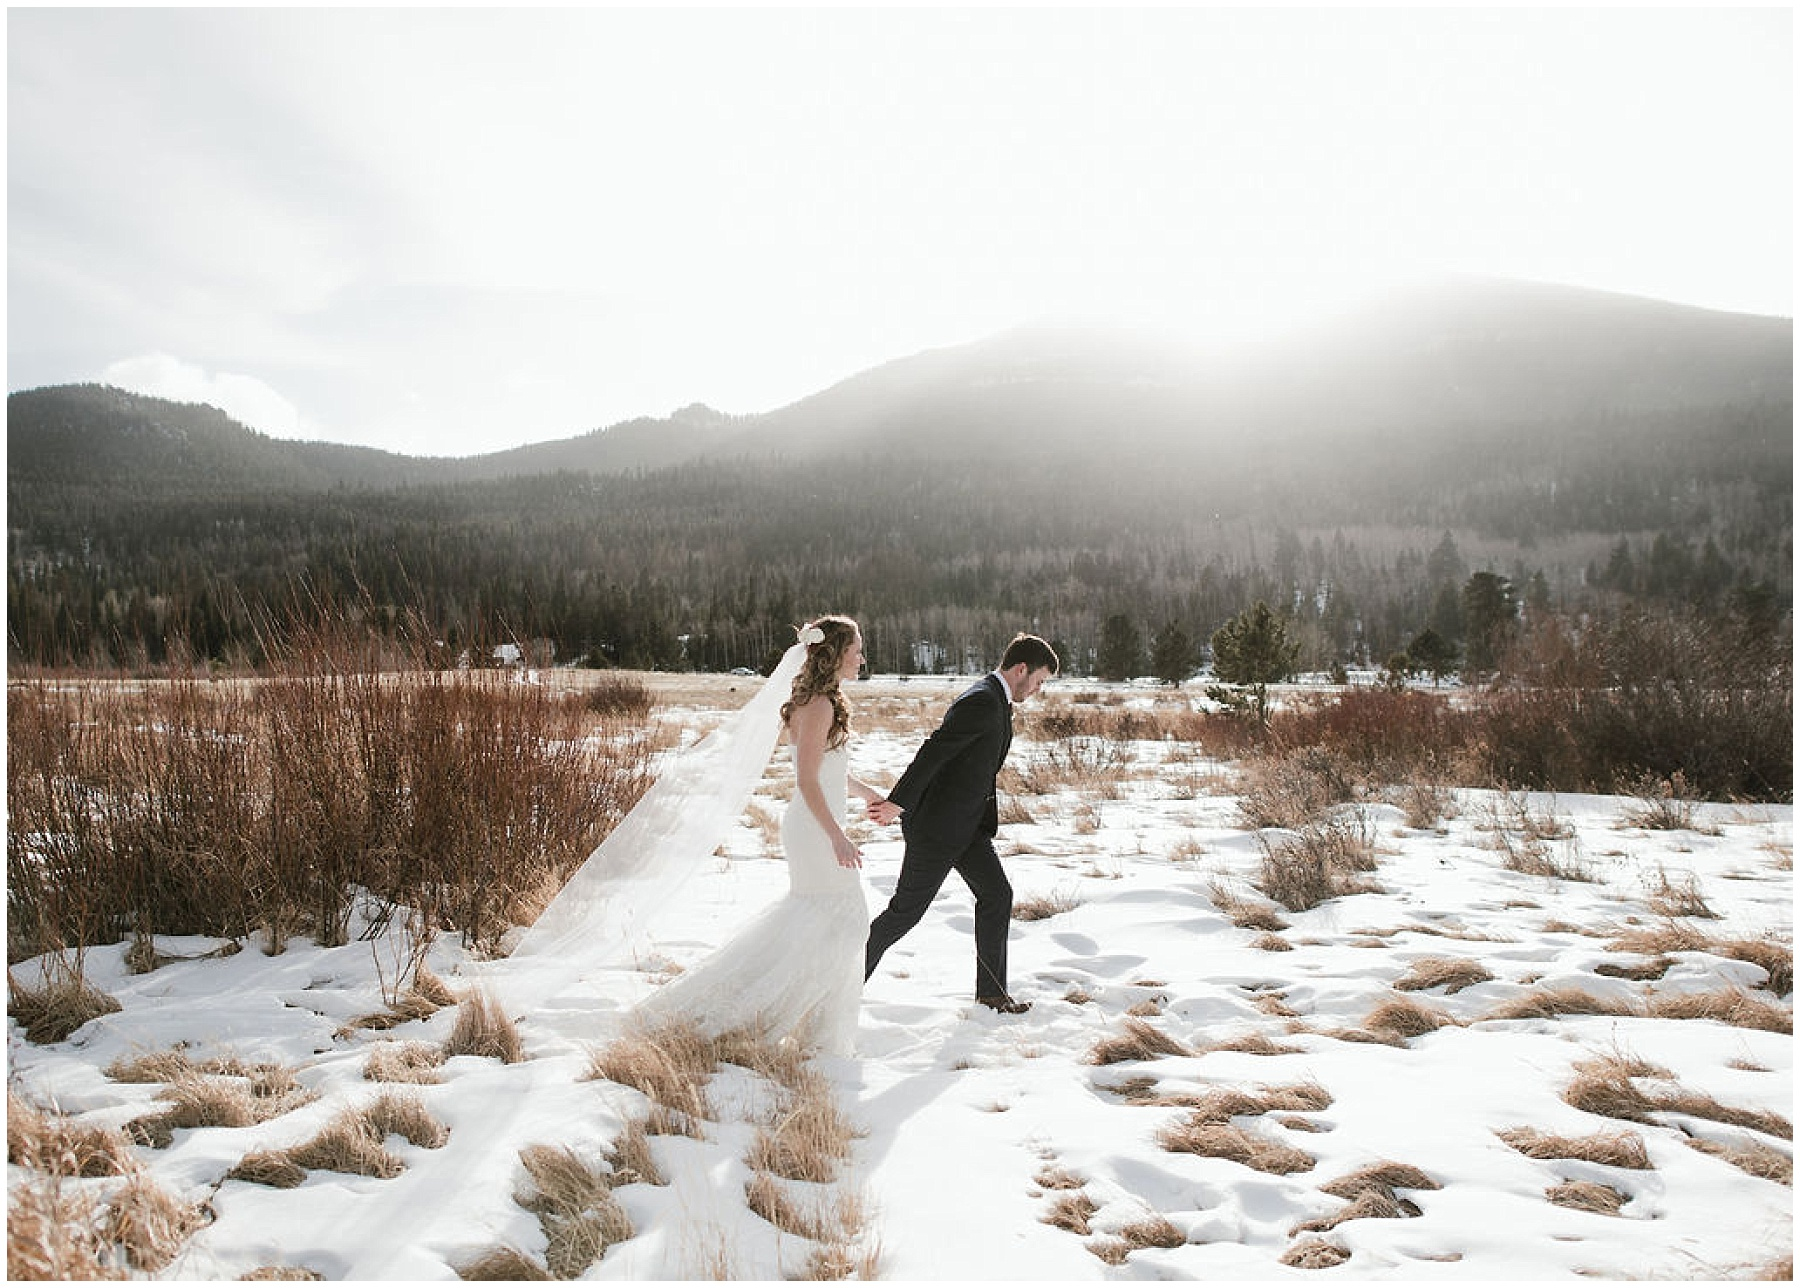 Katesalleyphotography-189_Haley and Dan get married in Estes Park.jpg